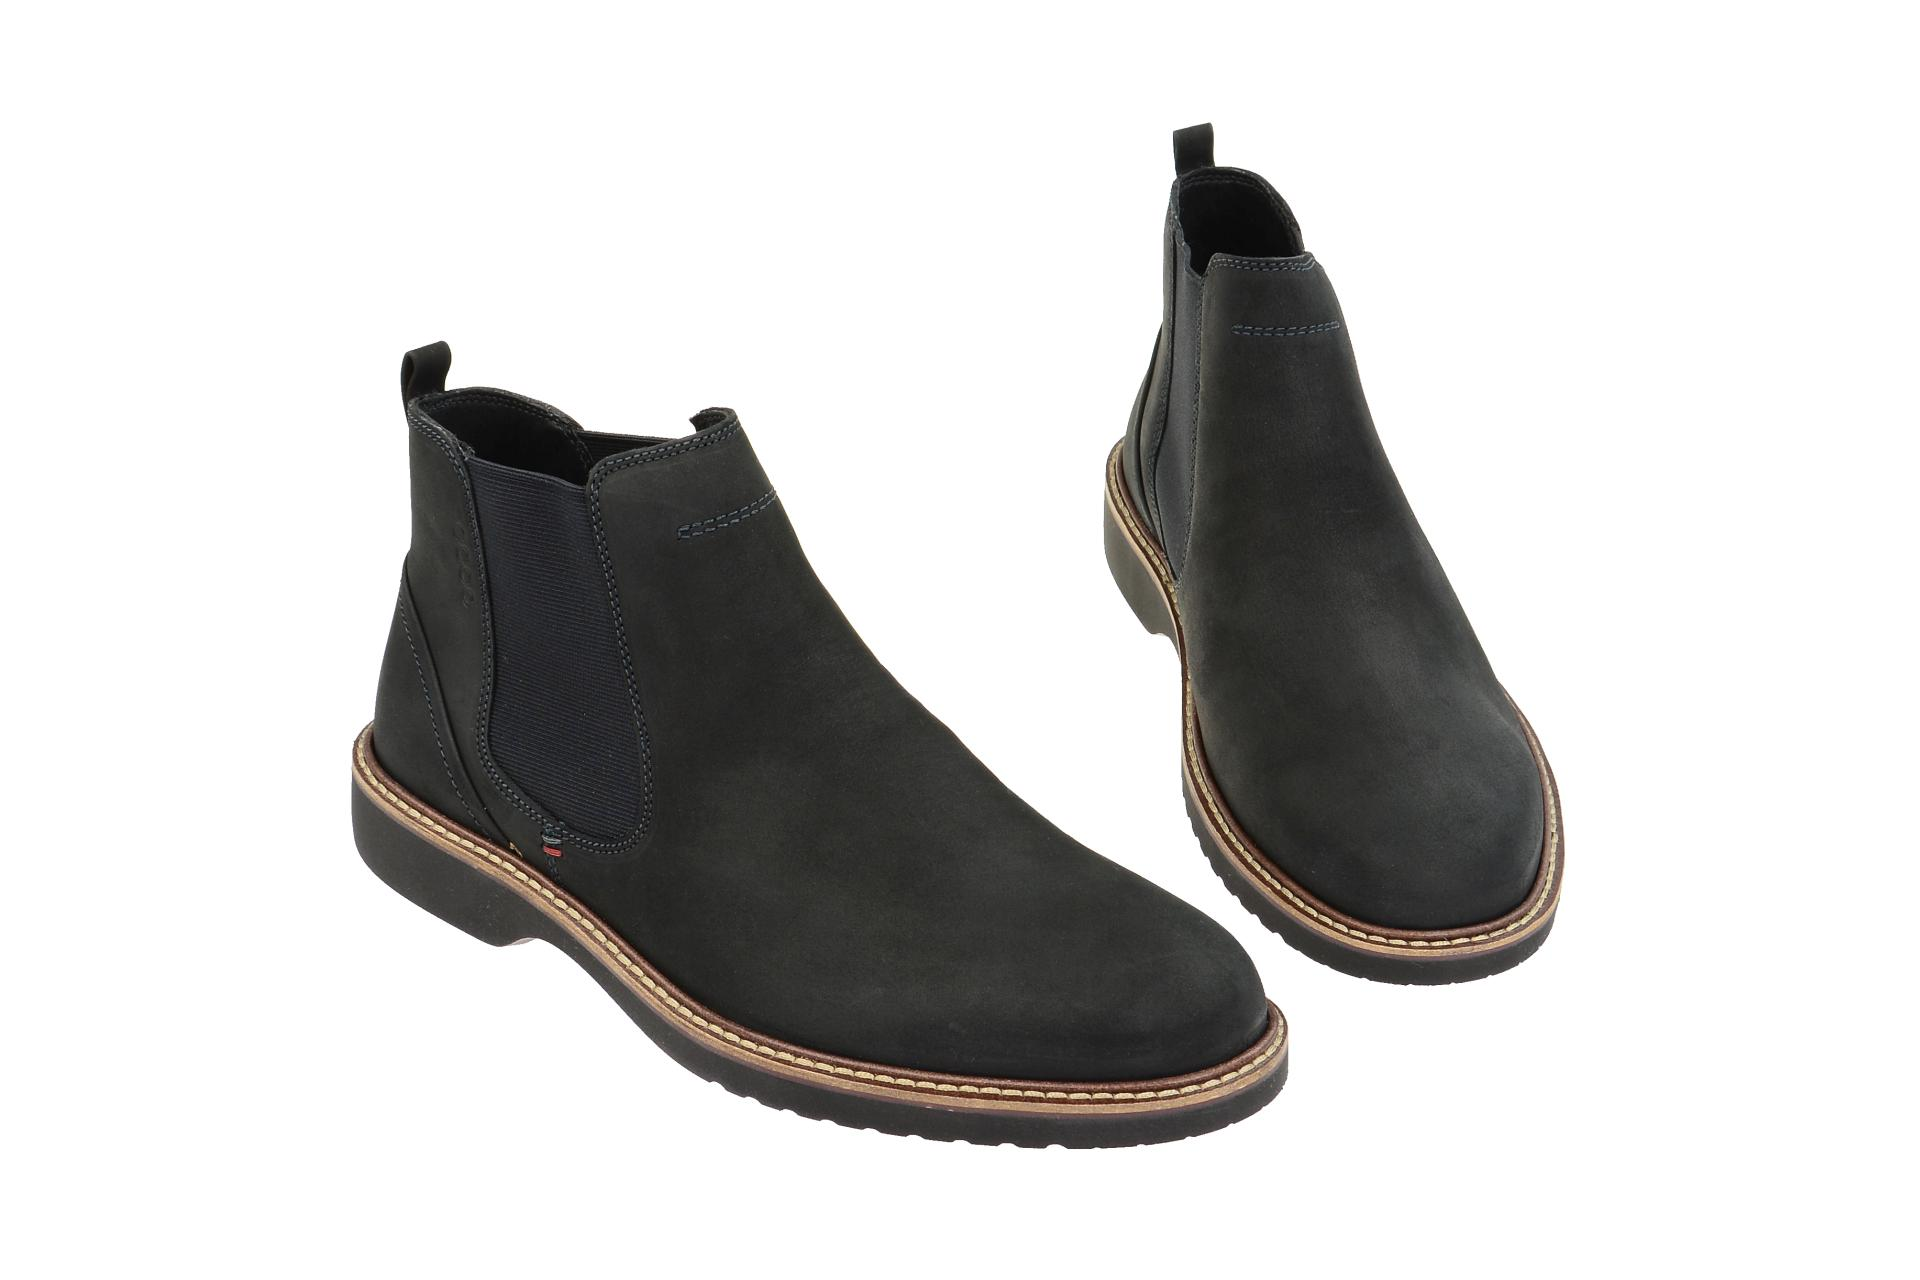 K Boots Clarks